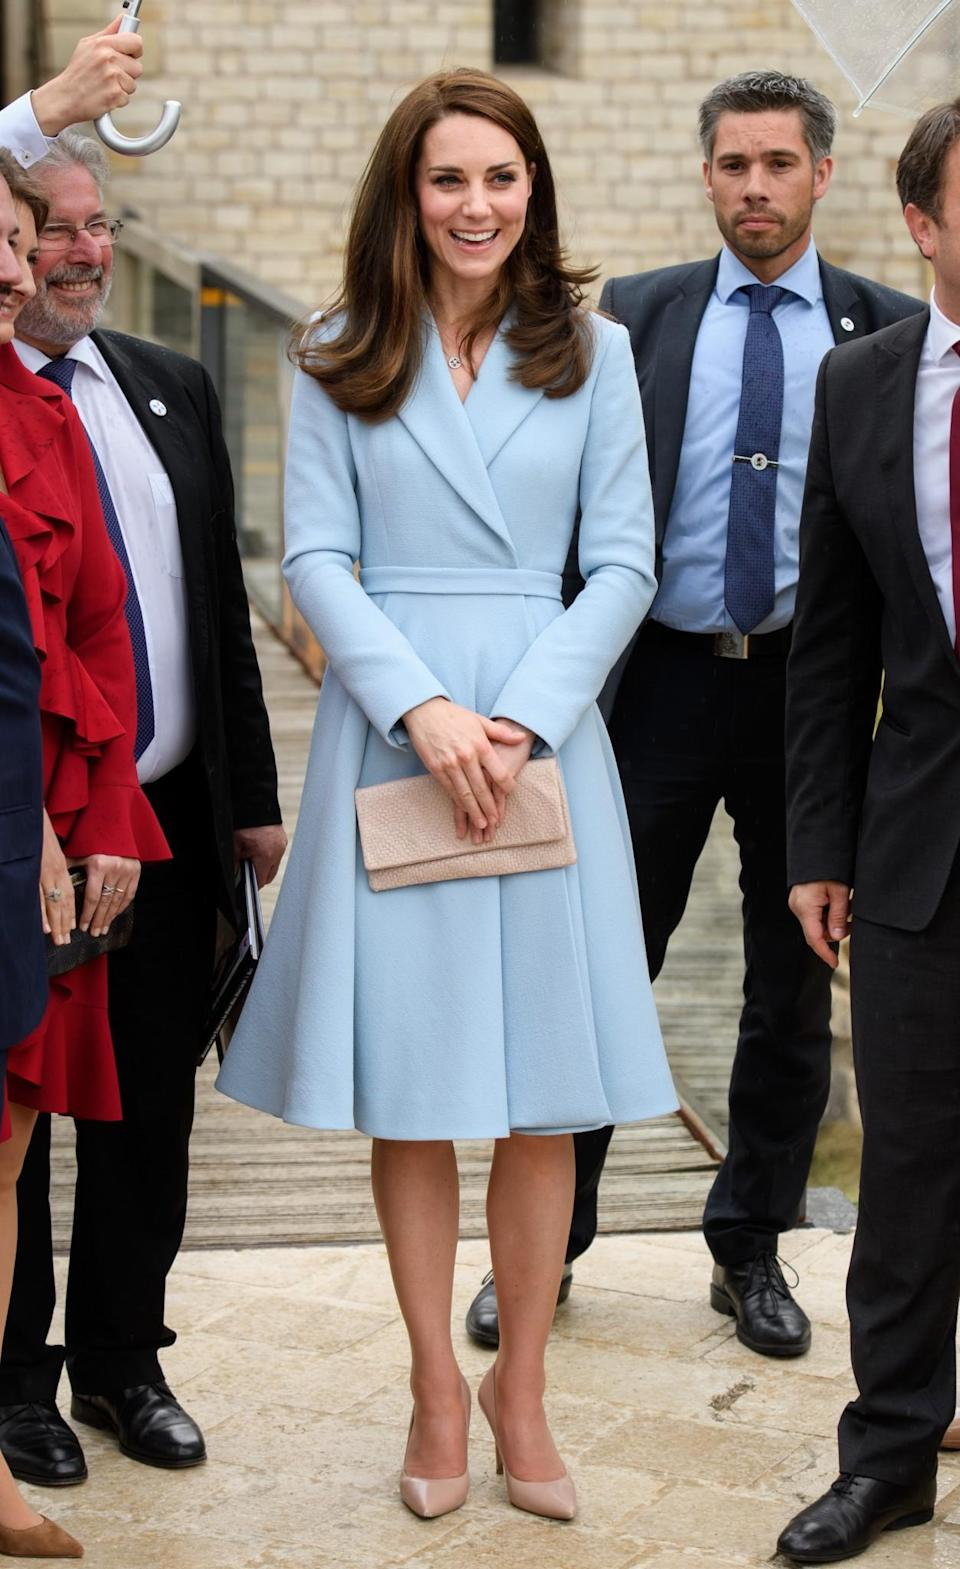 <p>Kate embarked on a solo trip to Luxembourg as part of Britiain's Brexit strategy. The Duchess chose a pale blue Emilia Wickstead coat dress featuring a pleated skirt and large collar. As usual, she teamed the look with nude satin heels and a matching clutch.<br><i>[Photo: PA]</i> </p>